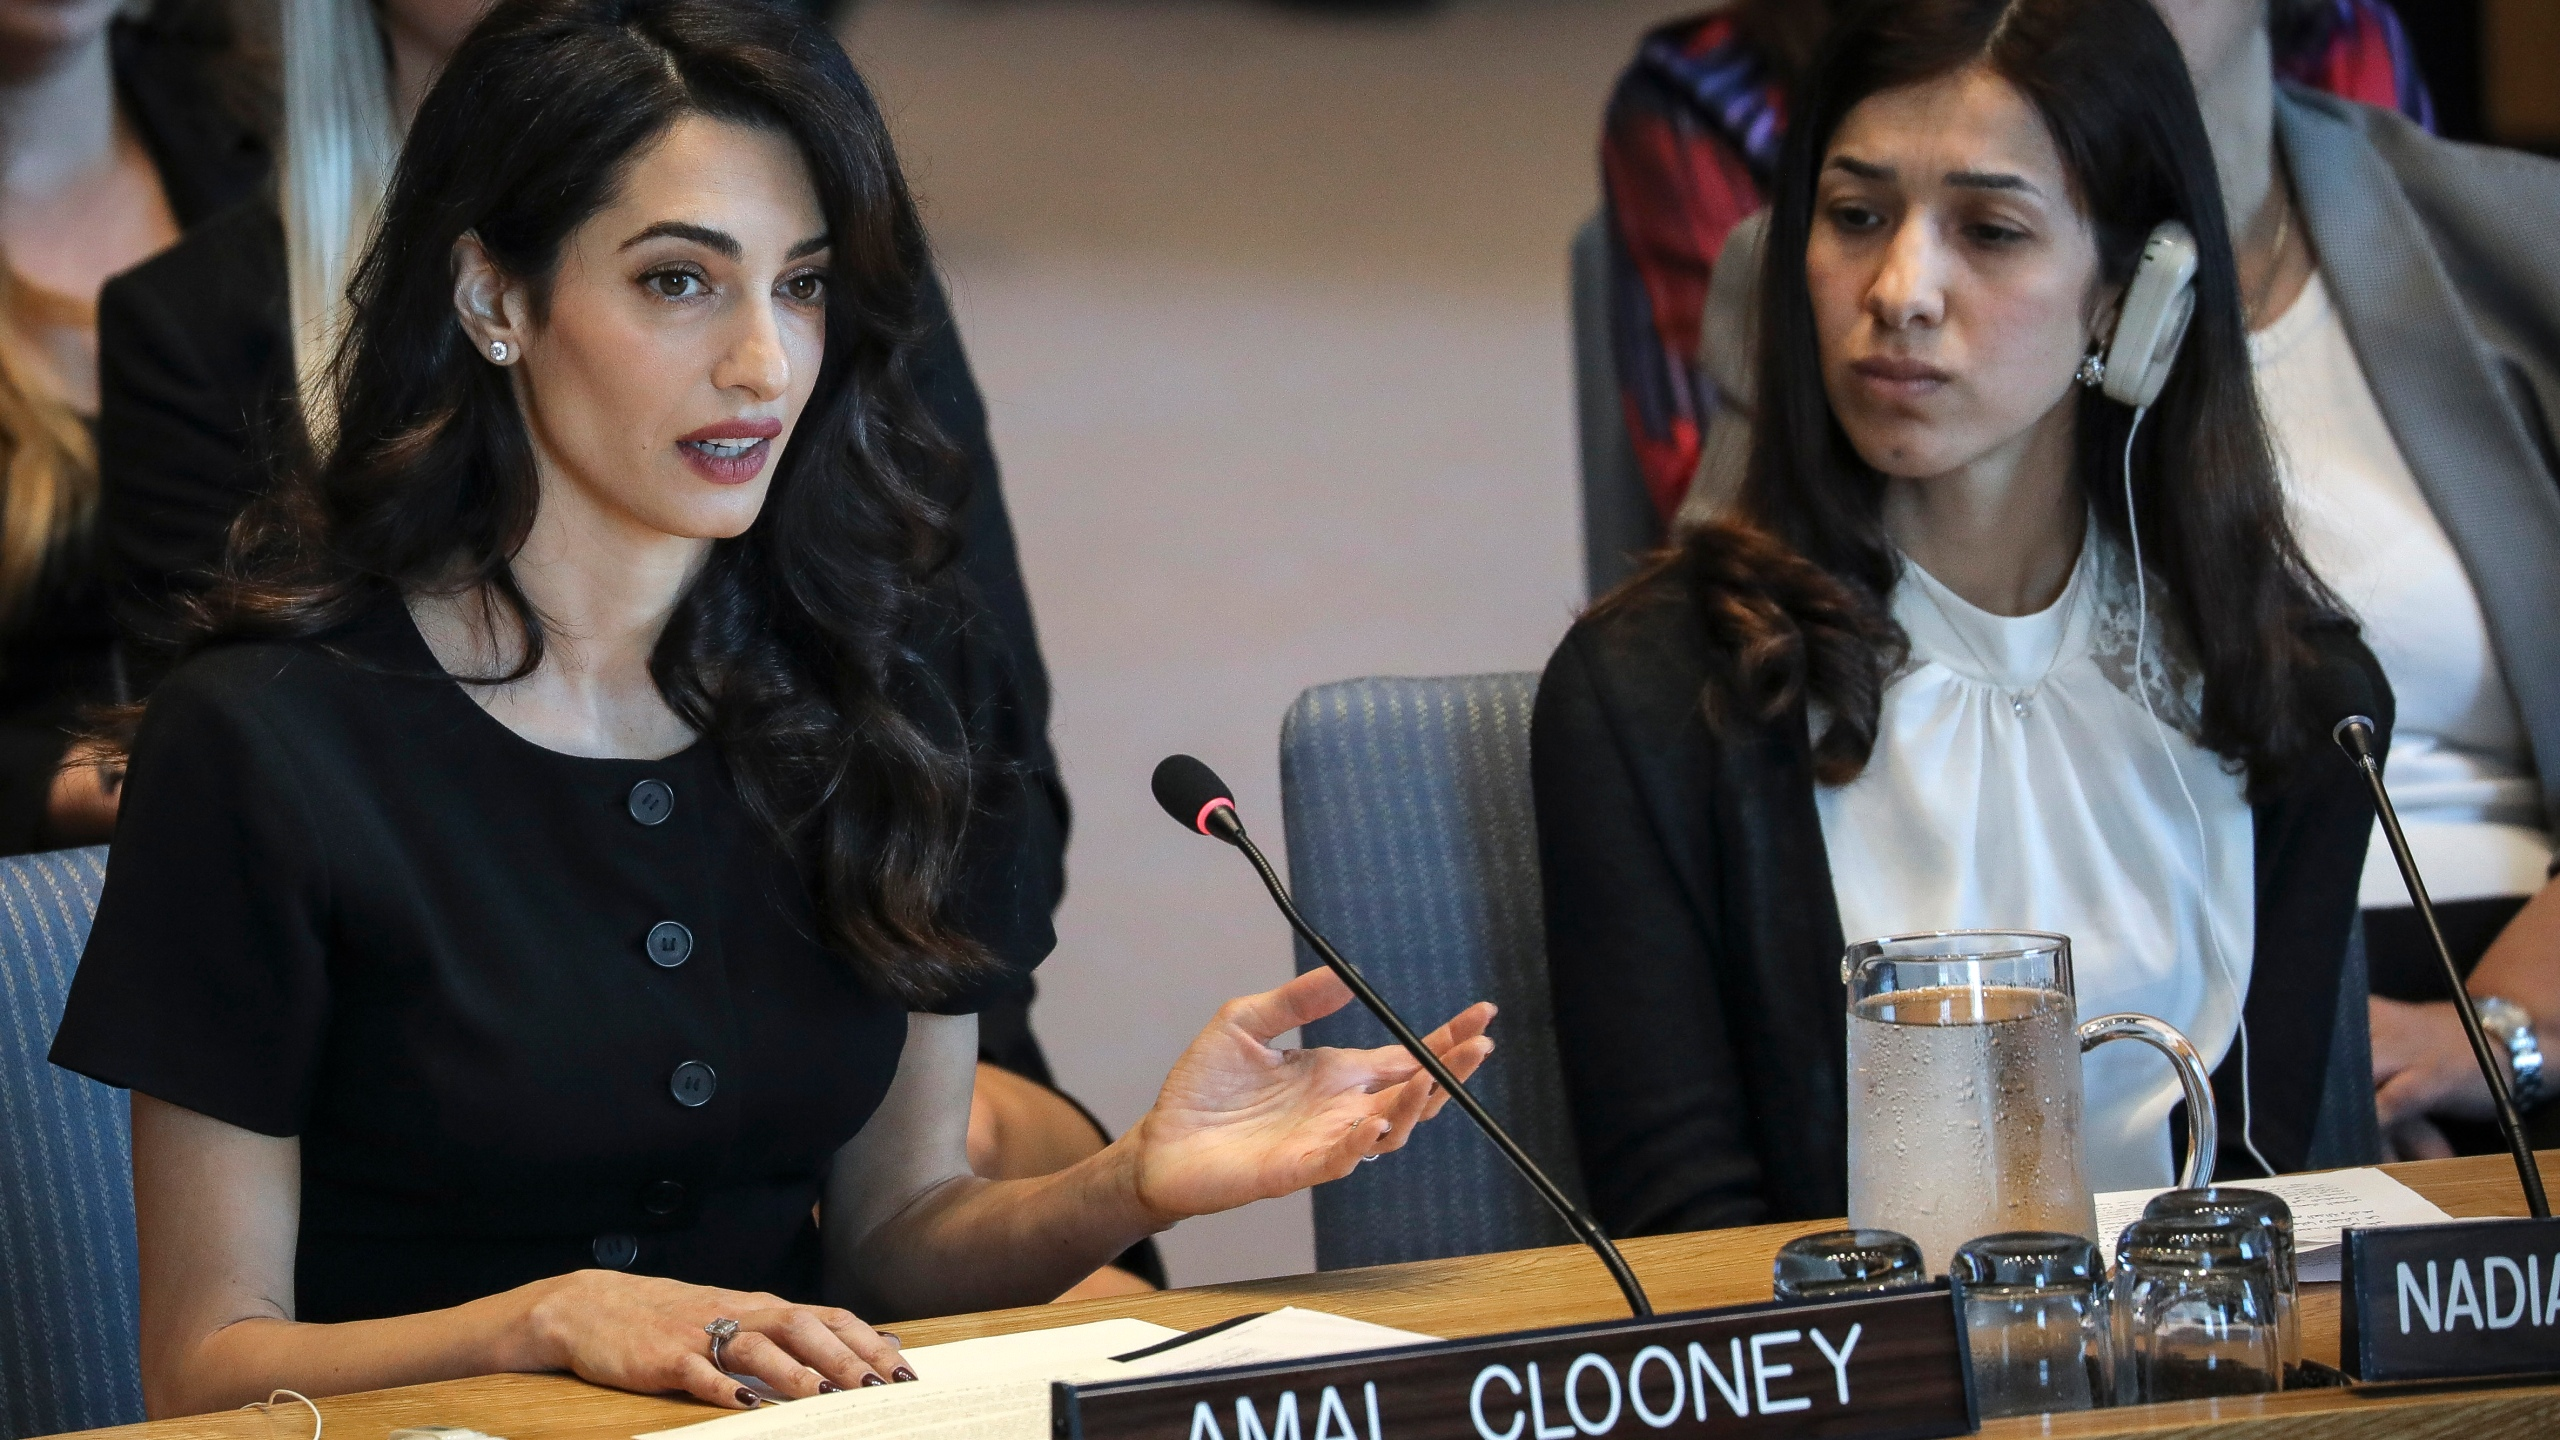 Human rights lawyer Amal Clooney and Iraqi human rights activist Nadia Murad Basee Taha at a United Nations Security Council meeting at the U.N. headquarters on April 23, 2019, in New York City. (Credit: Drew Angerer/Getty Images)